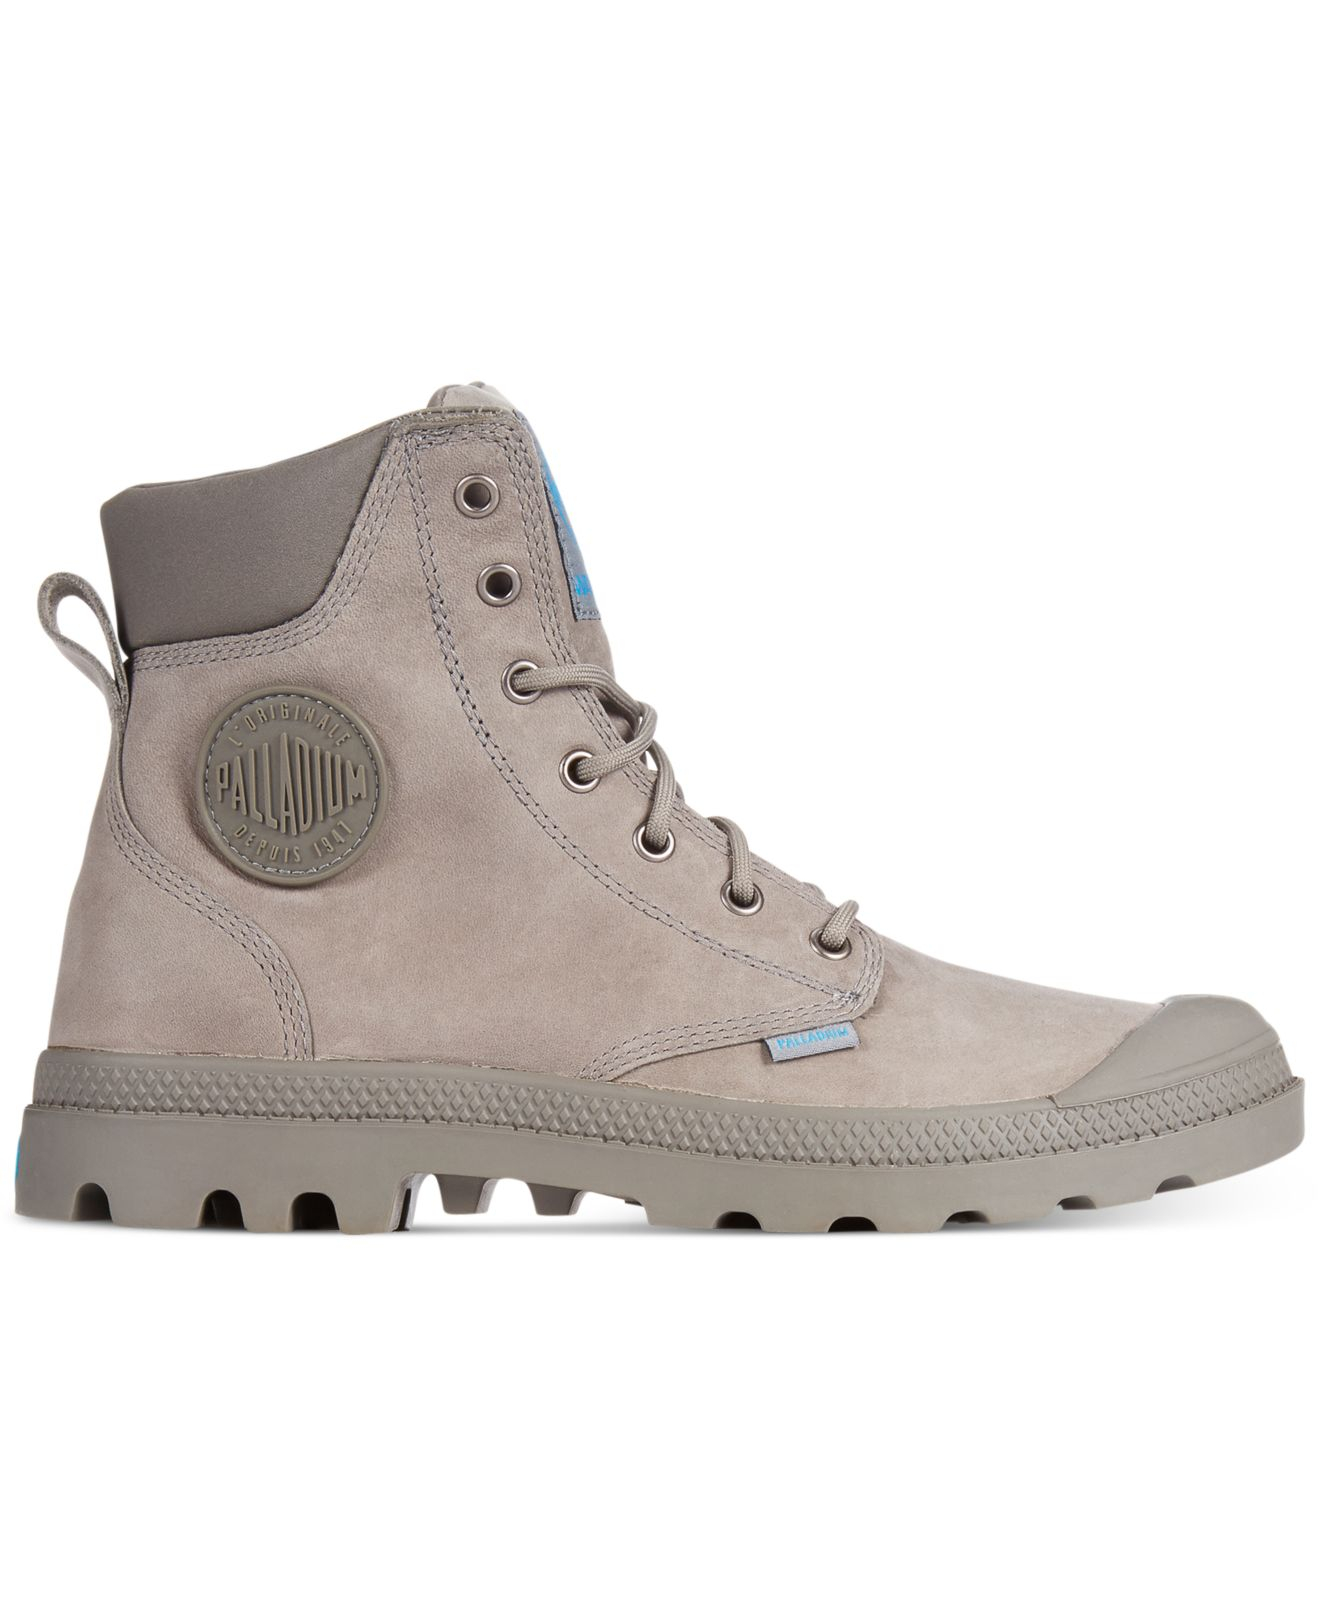 Lyst Palladium Pampa Cuff Wp Lux Boots In Green For Men